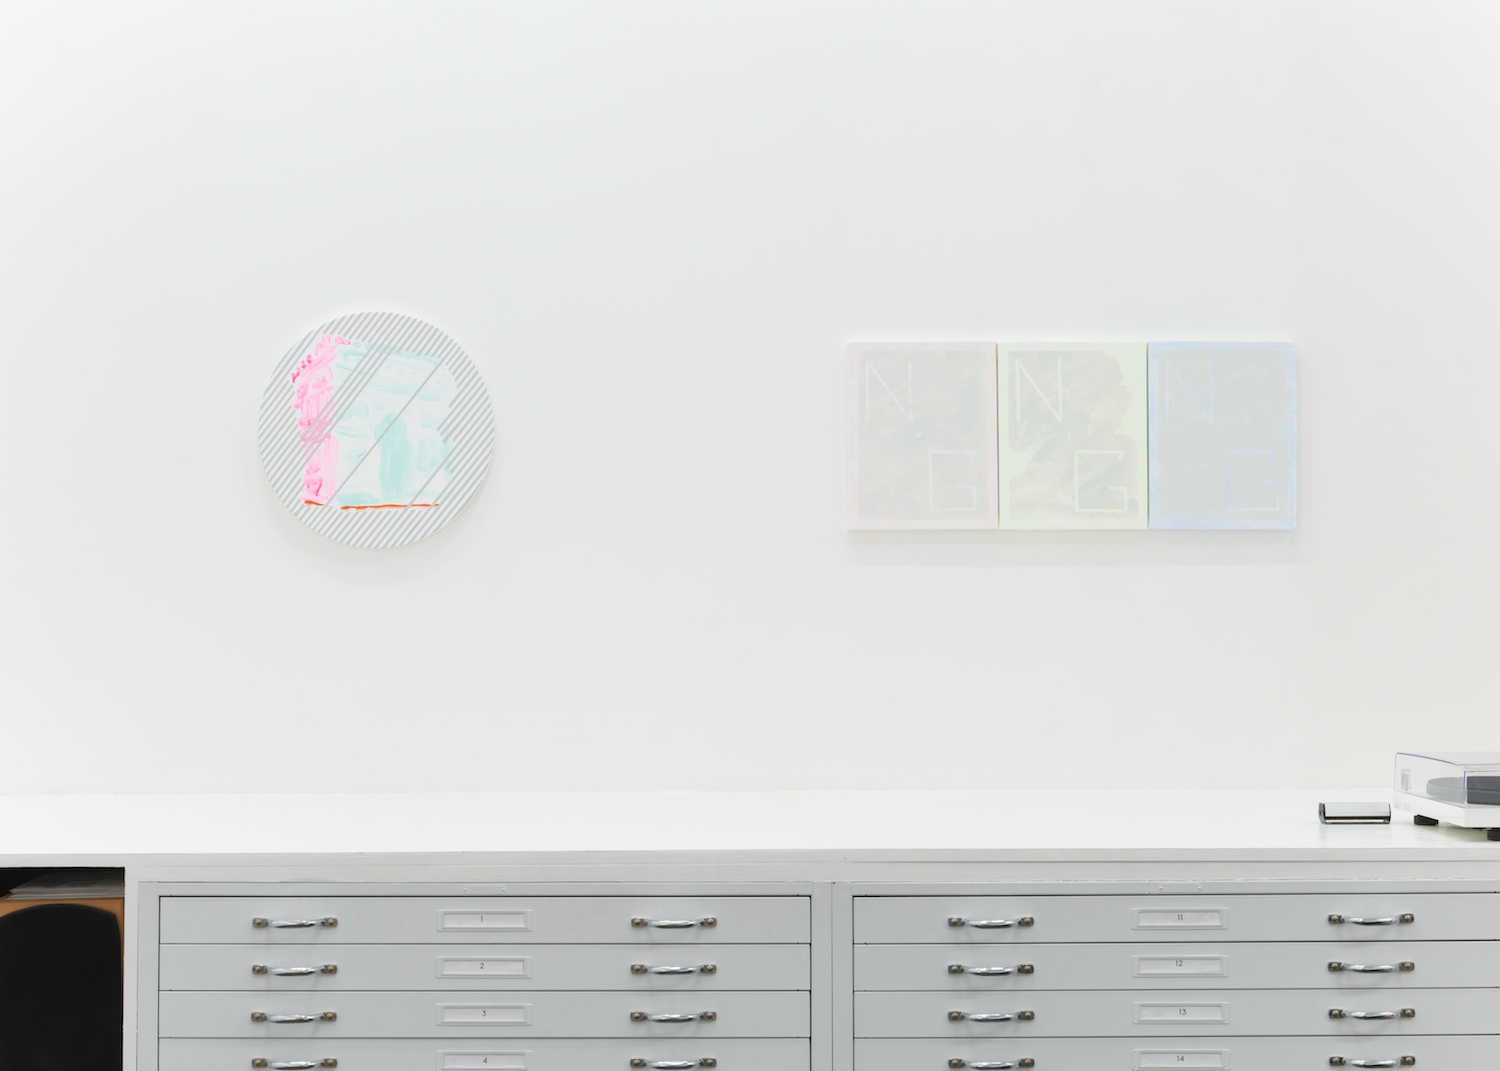 Shimon Minamikawa Blank Map, Snow 2014 Shane Campbell Gallery, Chicago Installation View